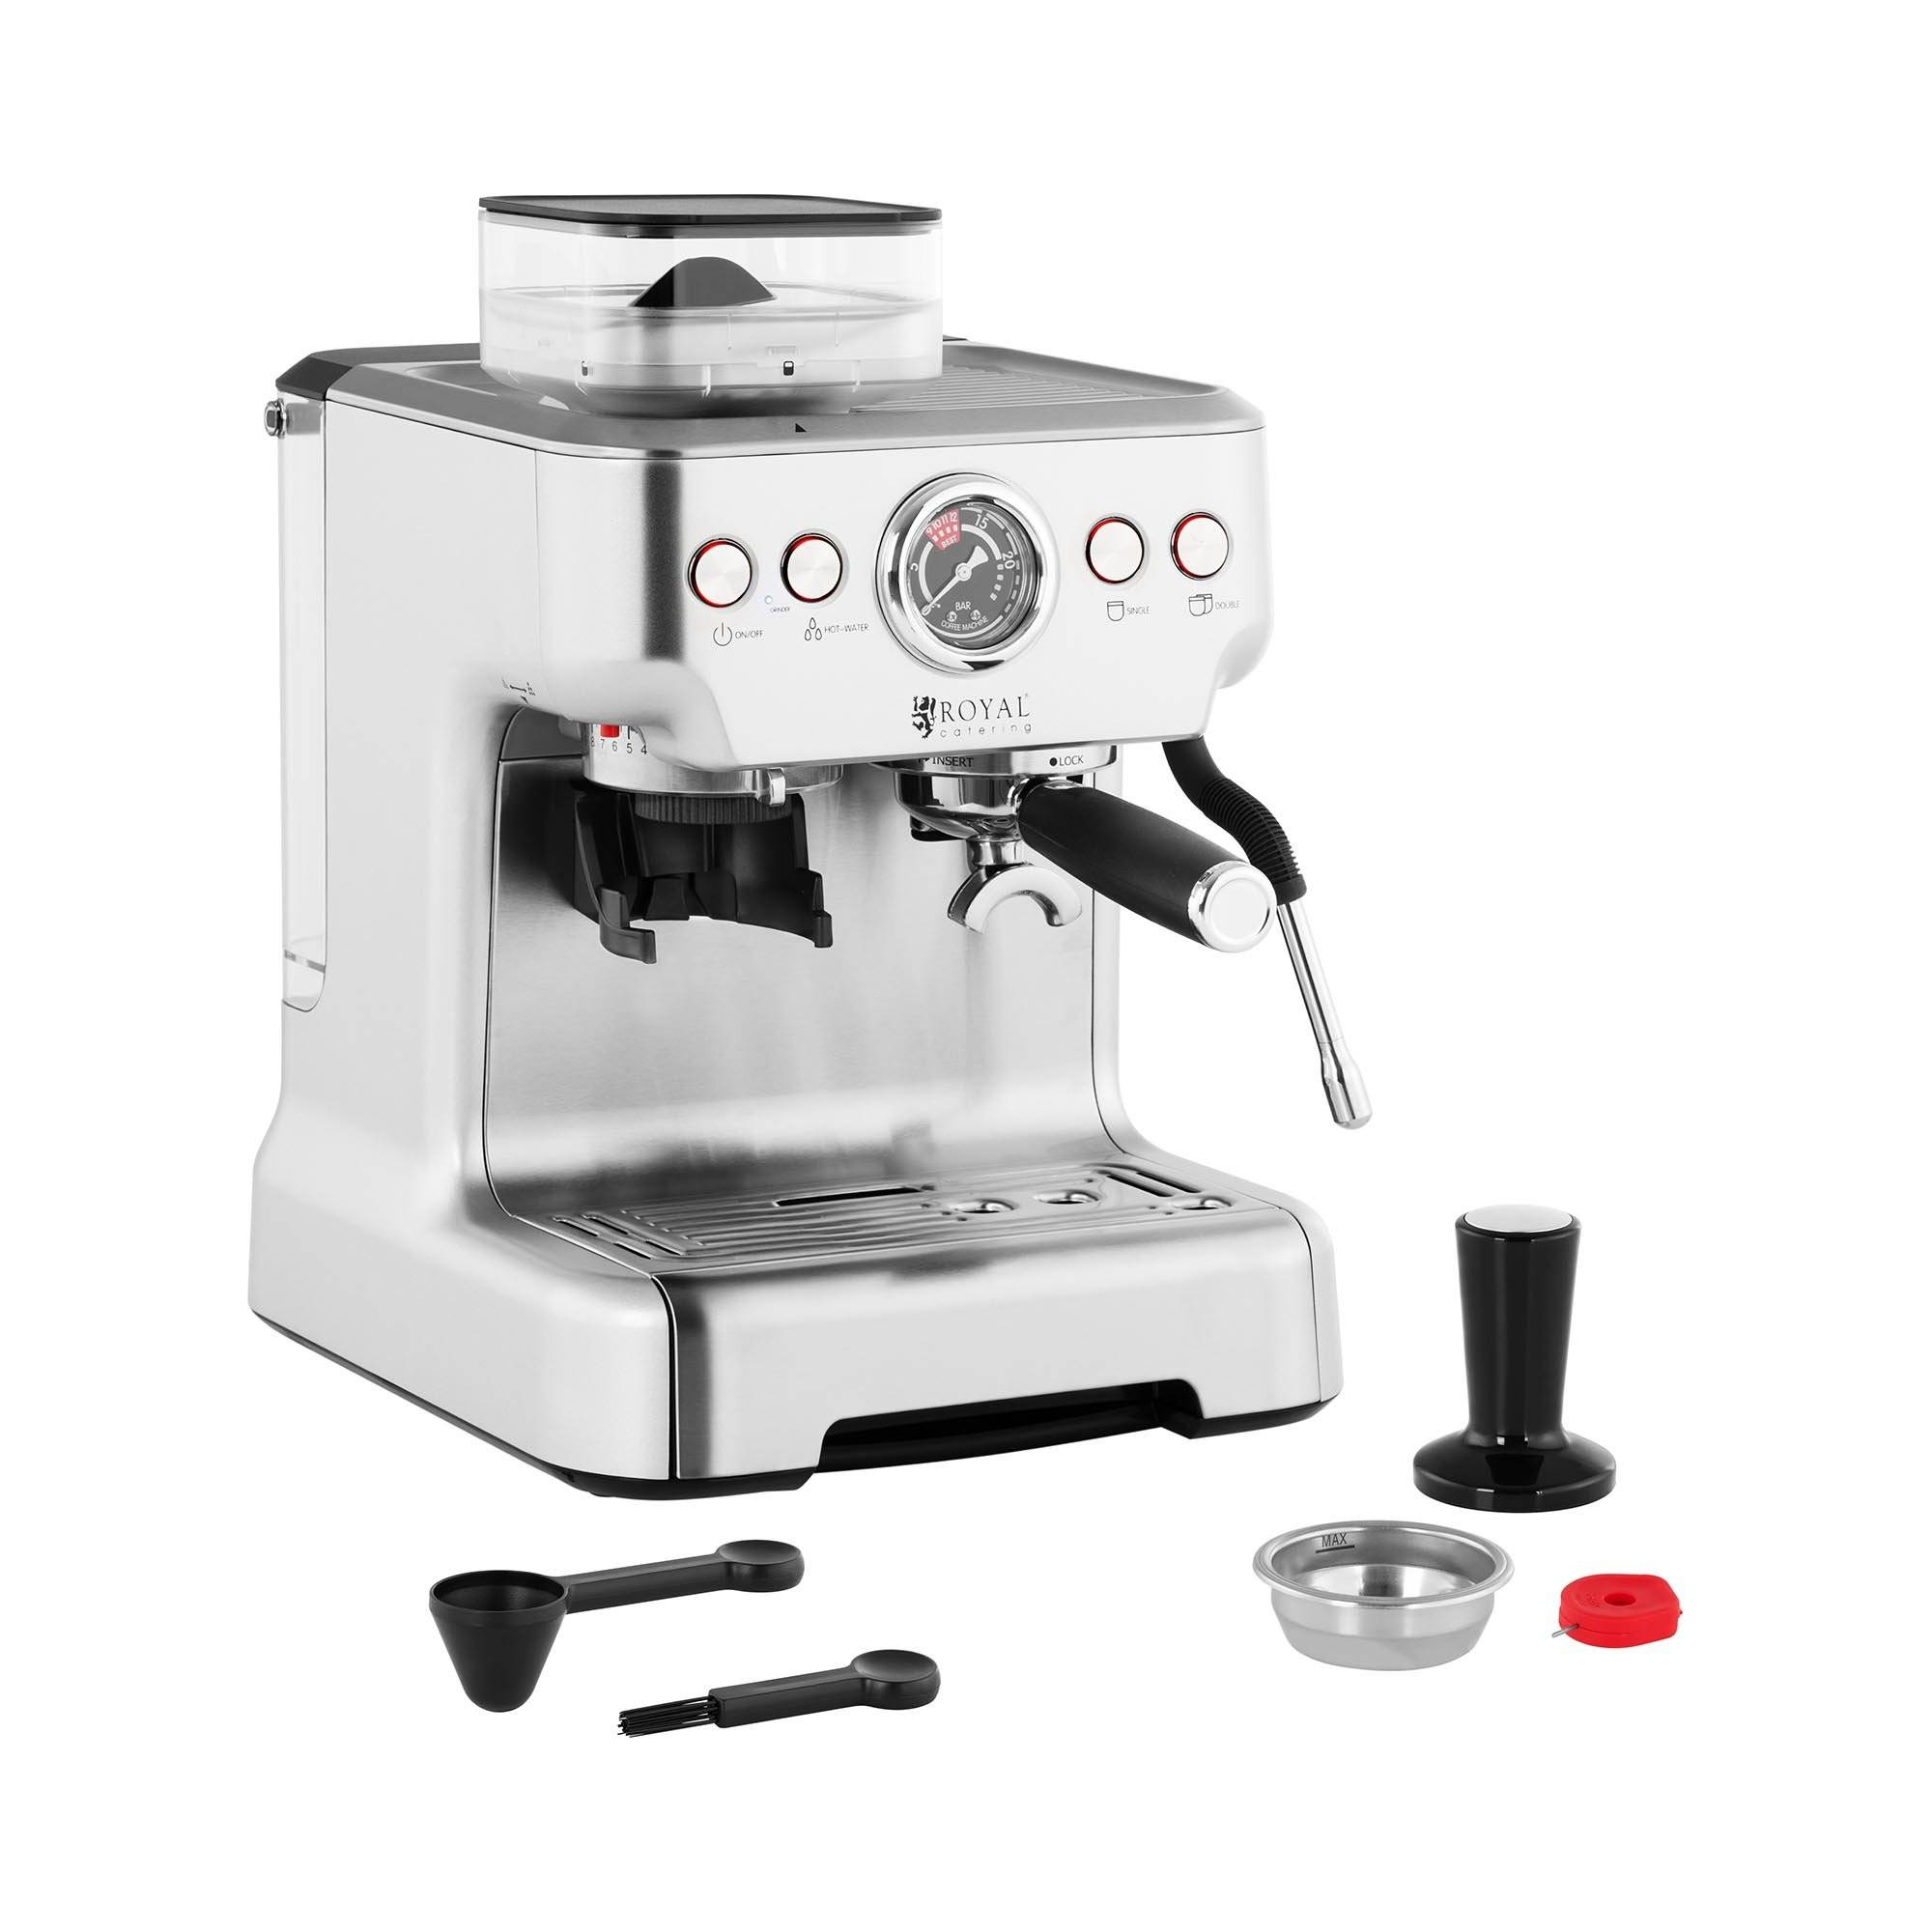 Royal Catering Espresso Machine - 20 bar - 2.5 L water tank RC-BCPM01